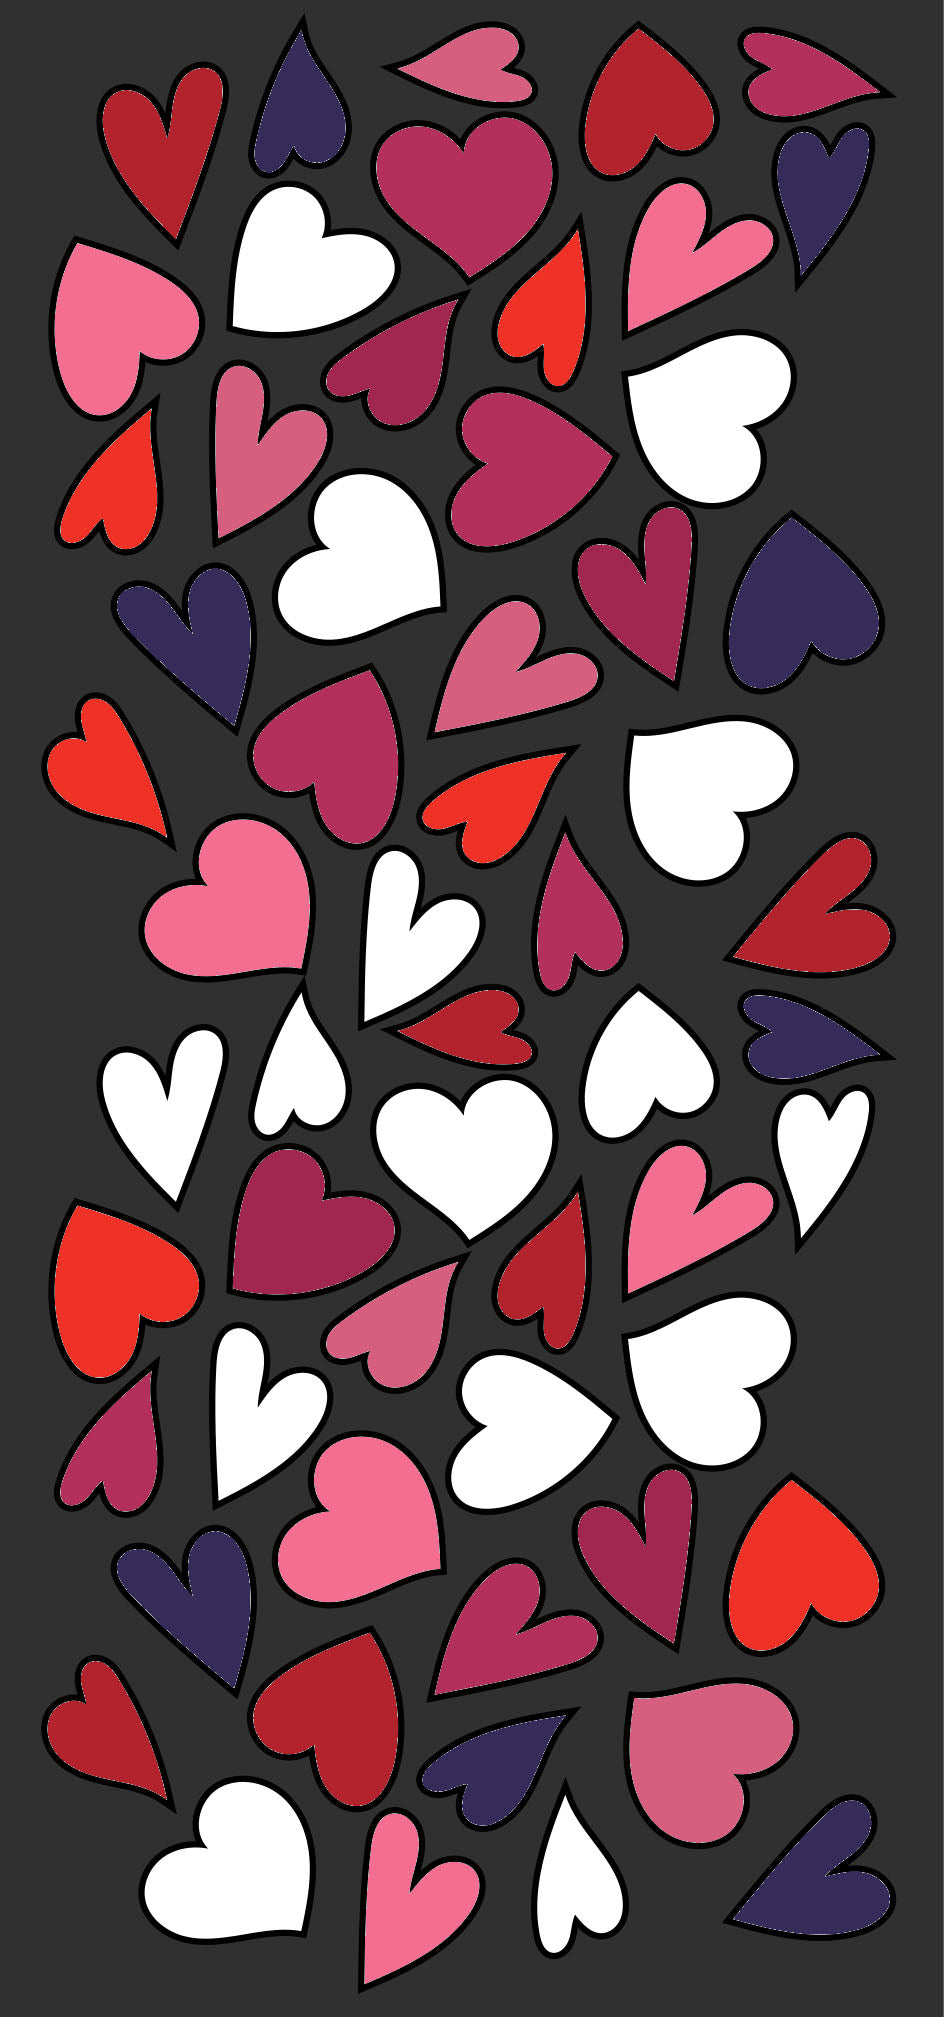 24 West Lemon Happy Hearts Scarf Template